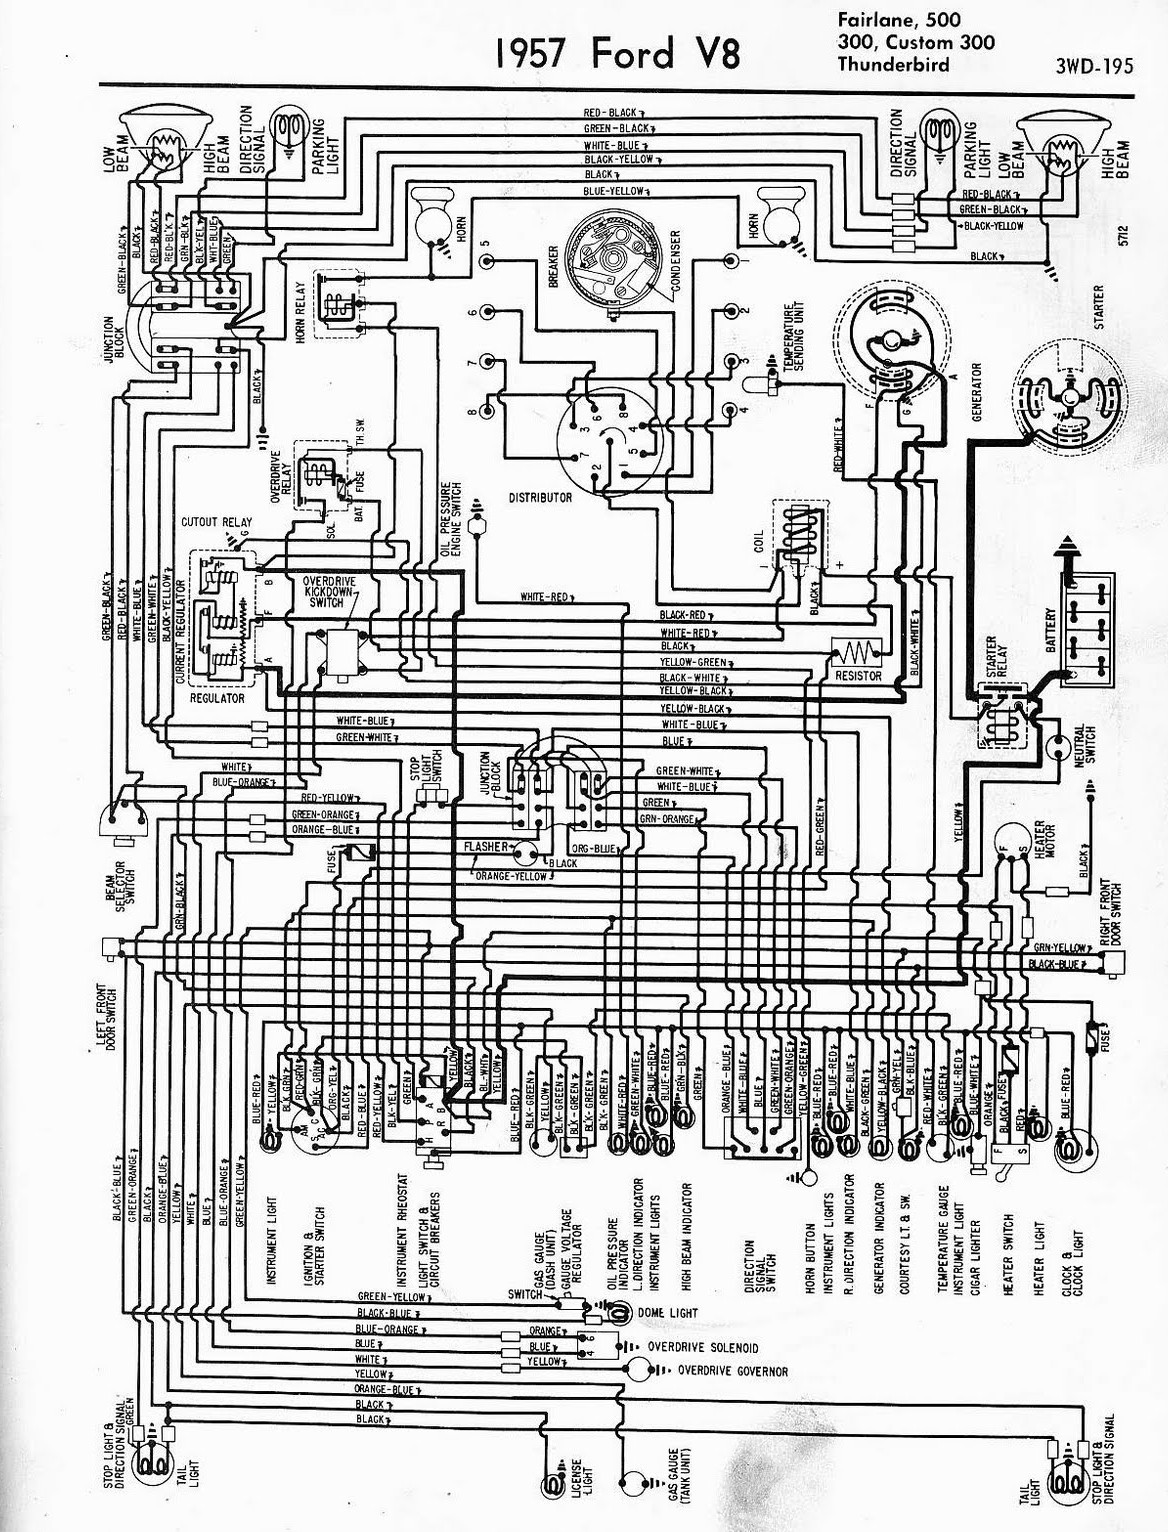 hight resolution of wiring diagrams of 1960 ford v8 thunderbird today wiring diagram1962 thunderbird fuse diagram wiring diagram schema